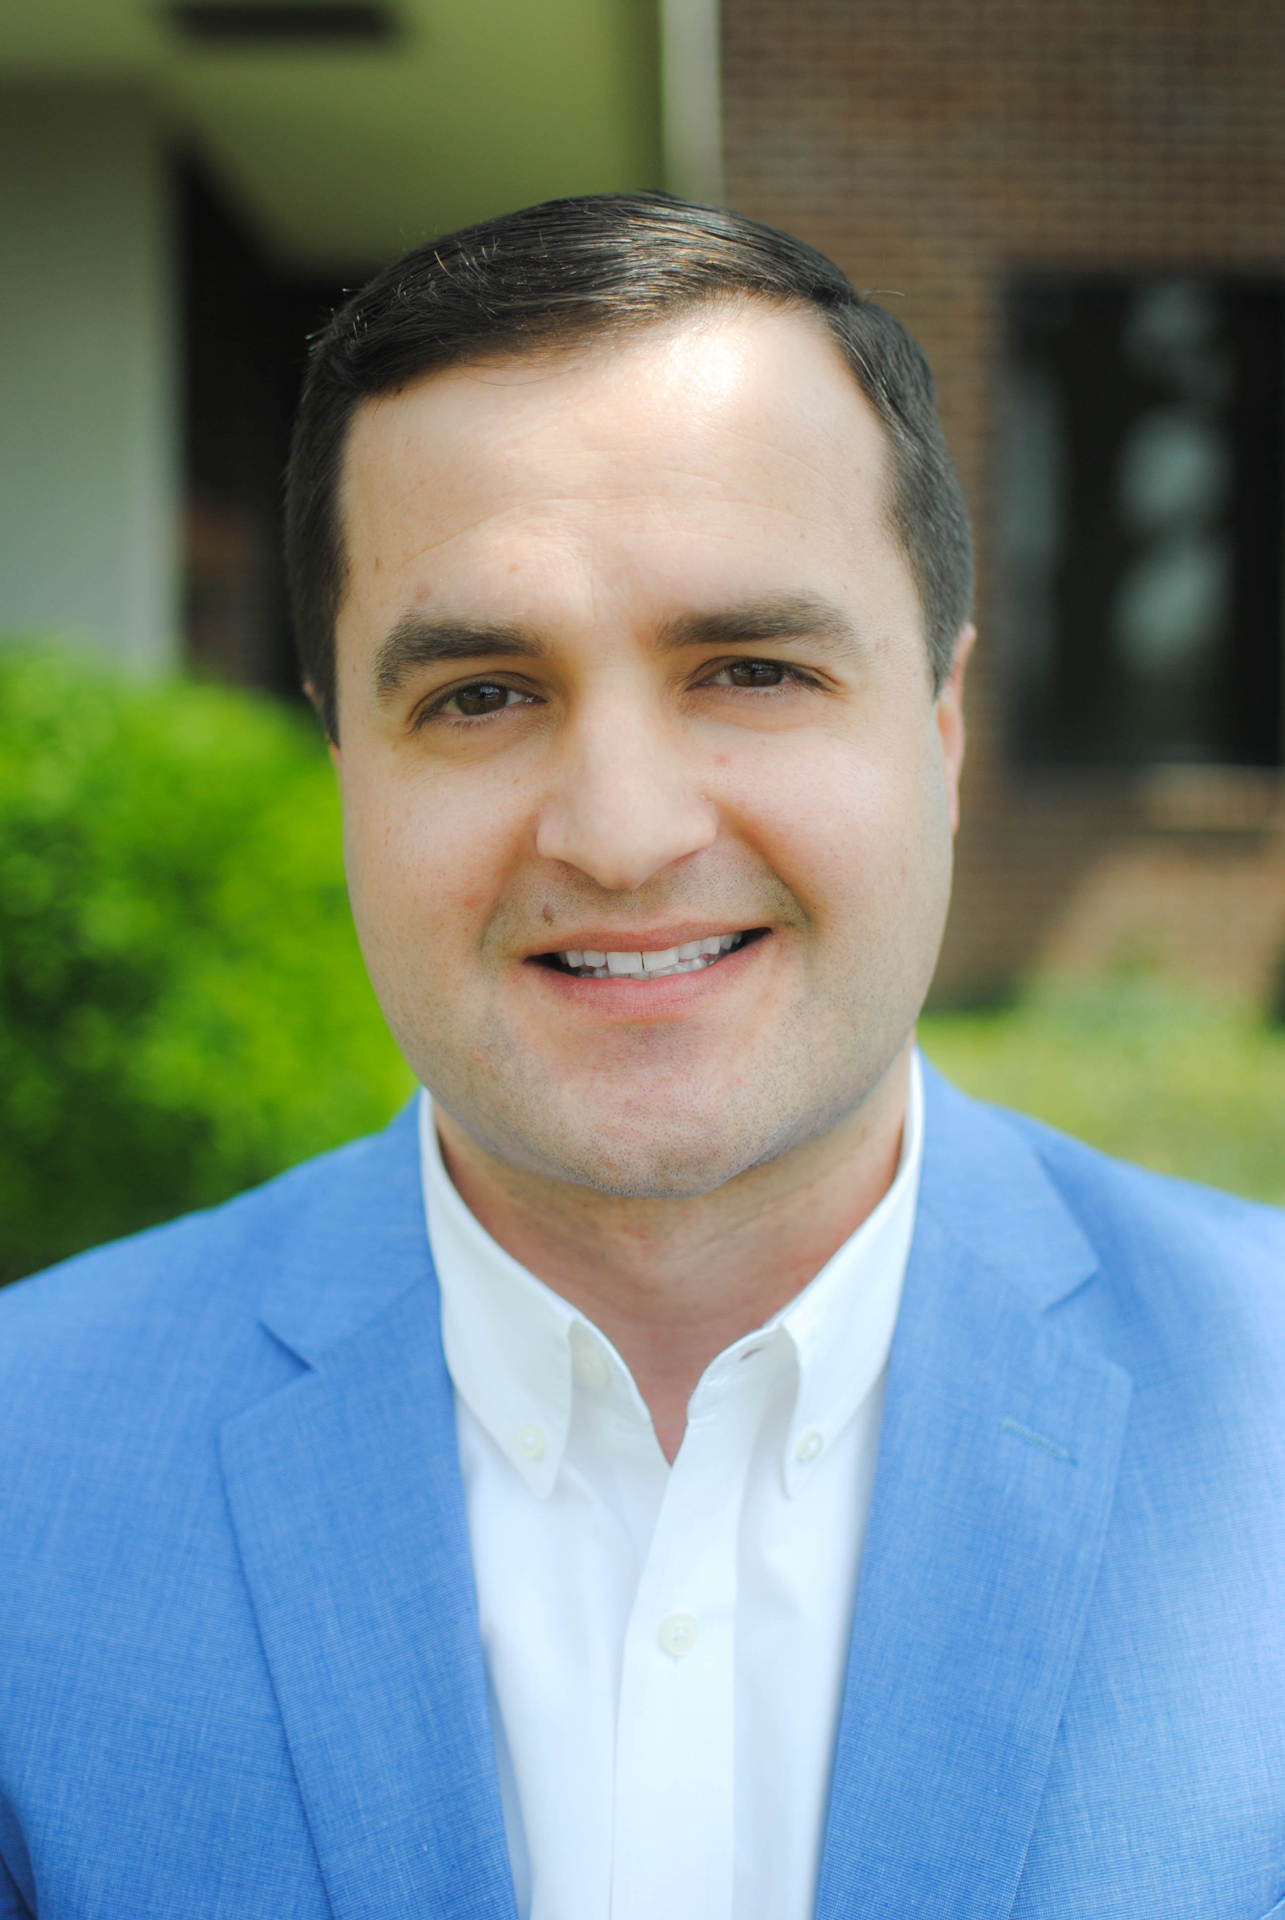 Josh contributes experience in Territory Management, Marketing Strategies, and Customer Service. As Account Manager, Josh is responsible for business development, client relations, and HR consultation. He attended the College of Charleston. Josh lives in Columbia with his wife and two daughters.